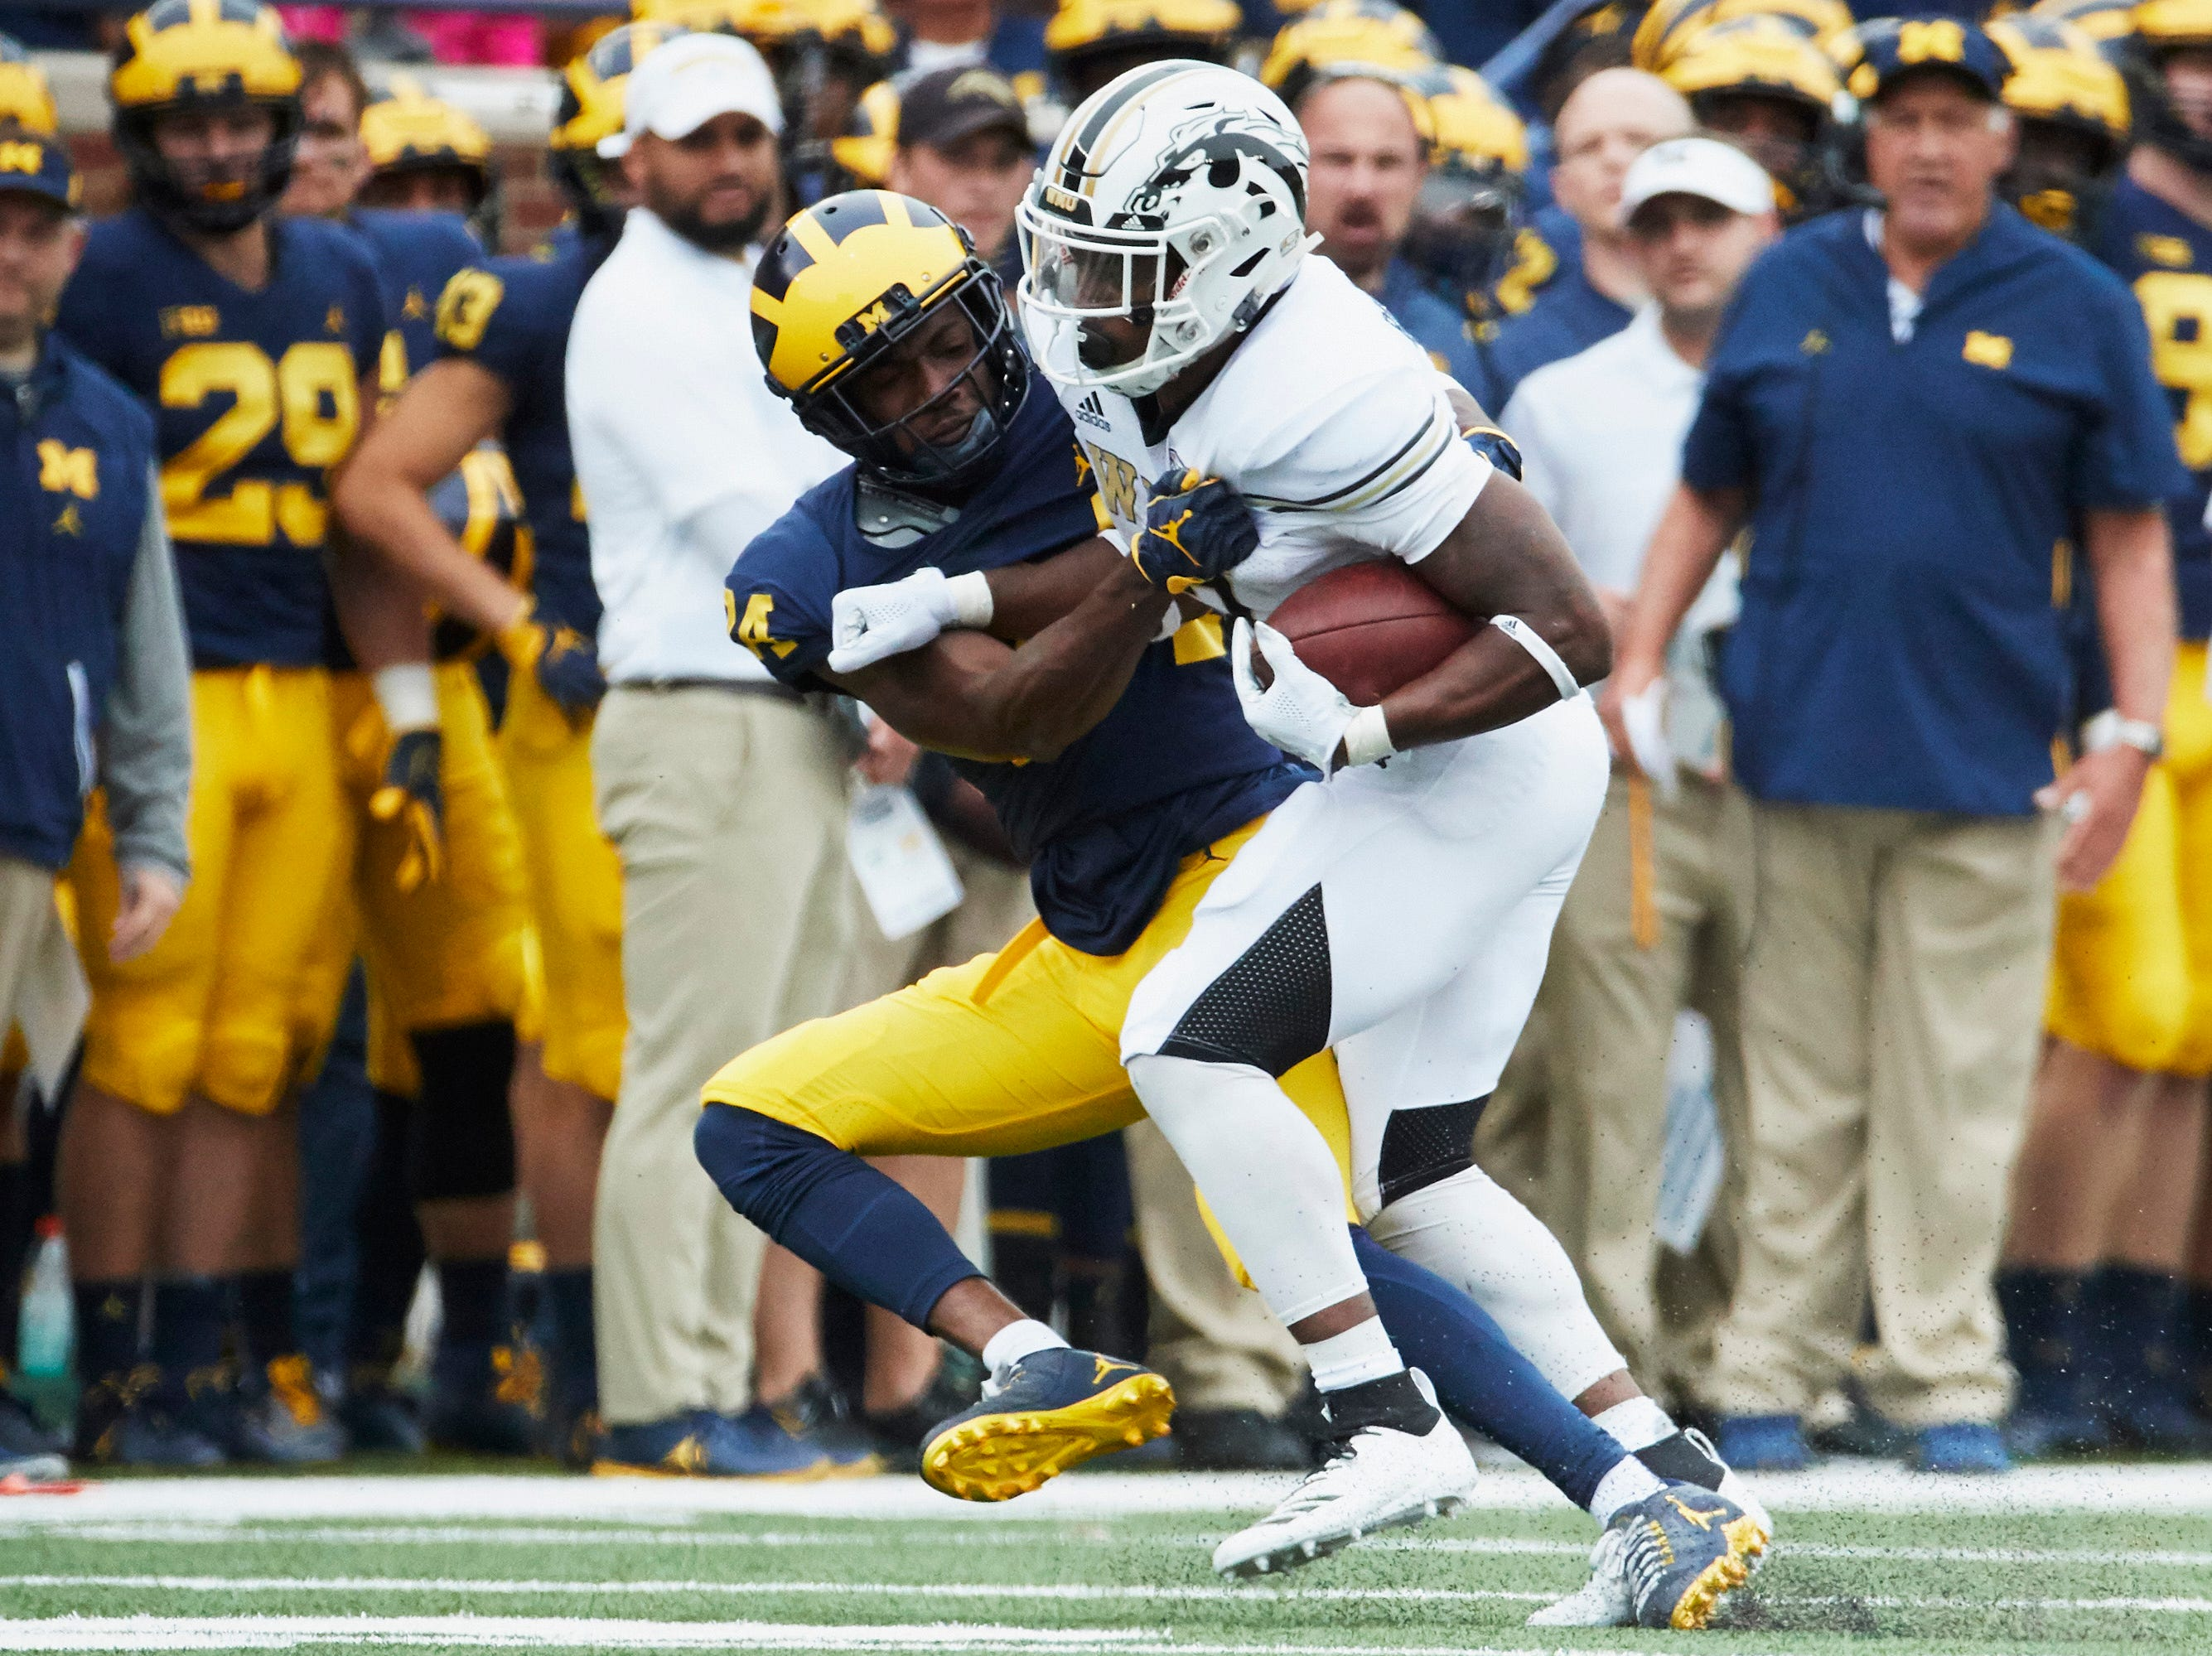 Sep 8, 2018; Ann Arbor, MI, USA; Western Michigan Broncos running back LeVante Bellamy (2) is tackled by Michigan Wolverines defensive back Lavert Hill (24) in the first half at Michigan Stadium. Mandatory Credit: Rick Osentoski-USA TODAY Sports